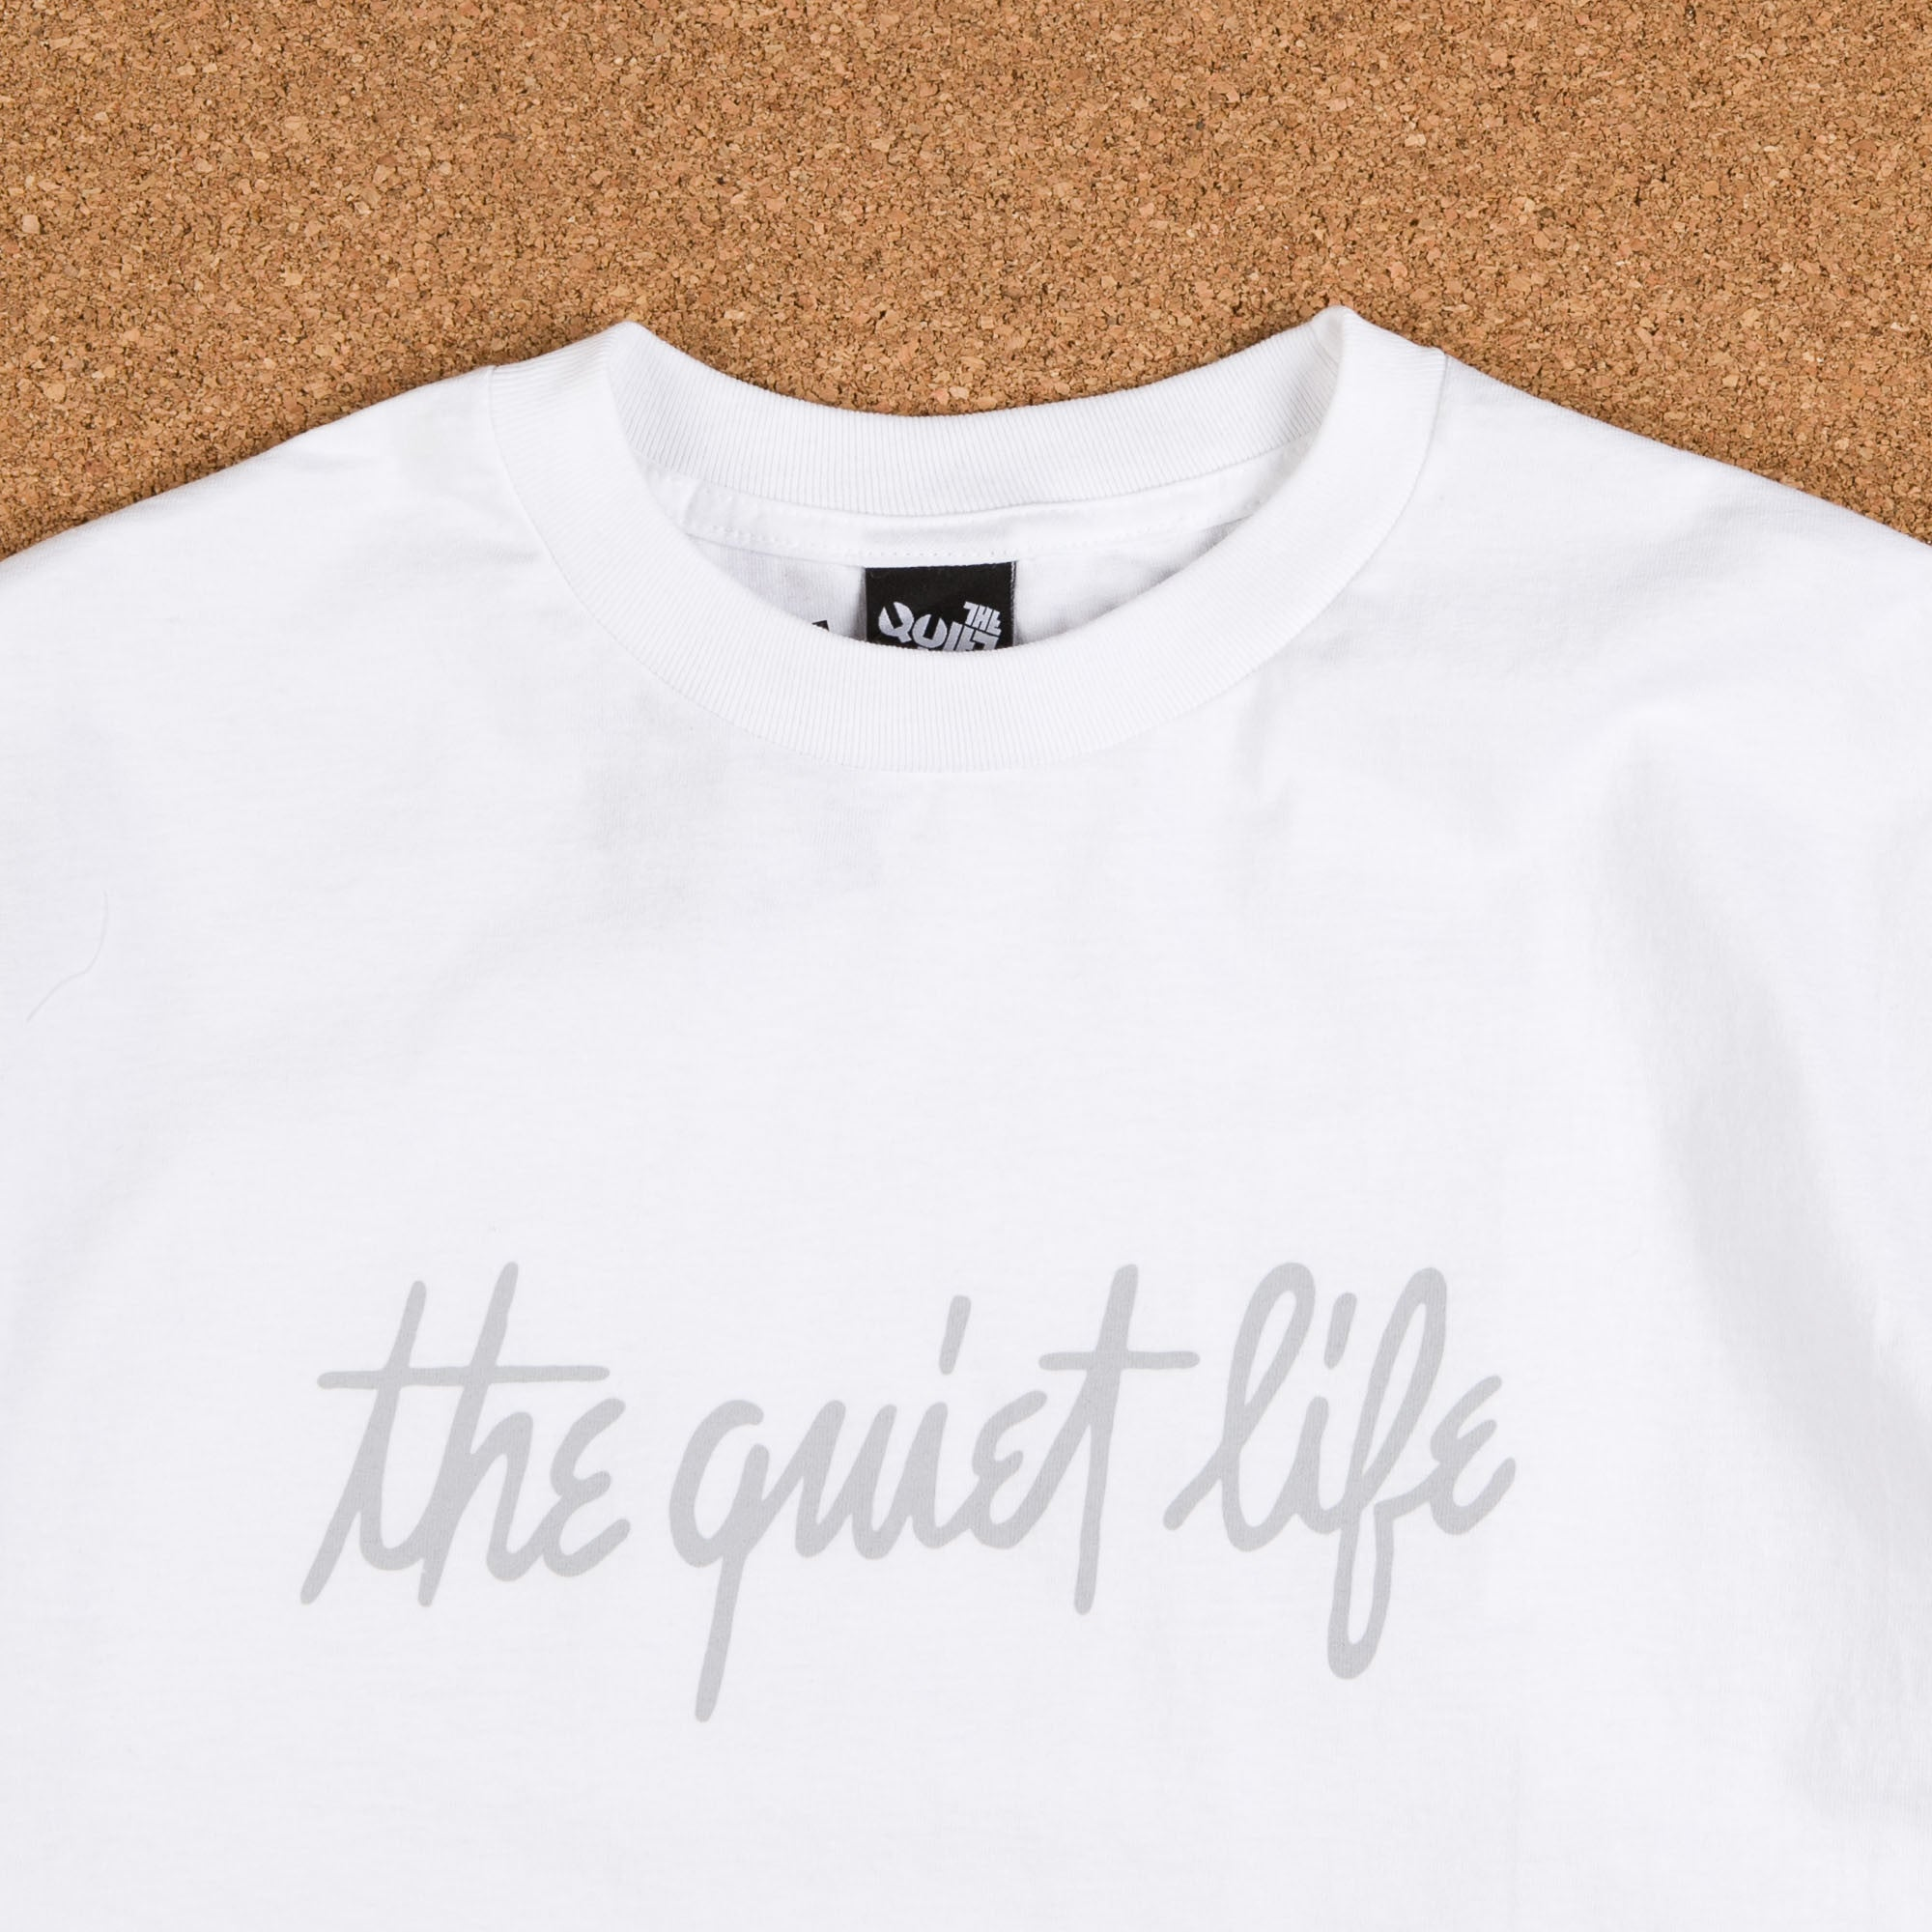 The Quiet Life Pen And Ink T-Shirt - White